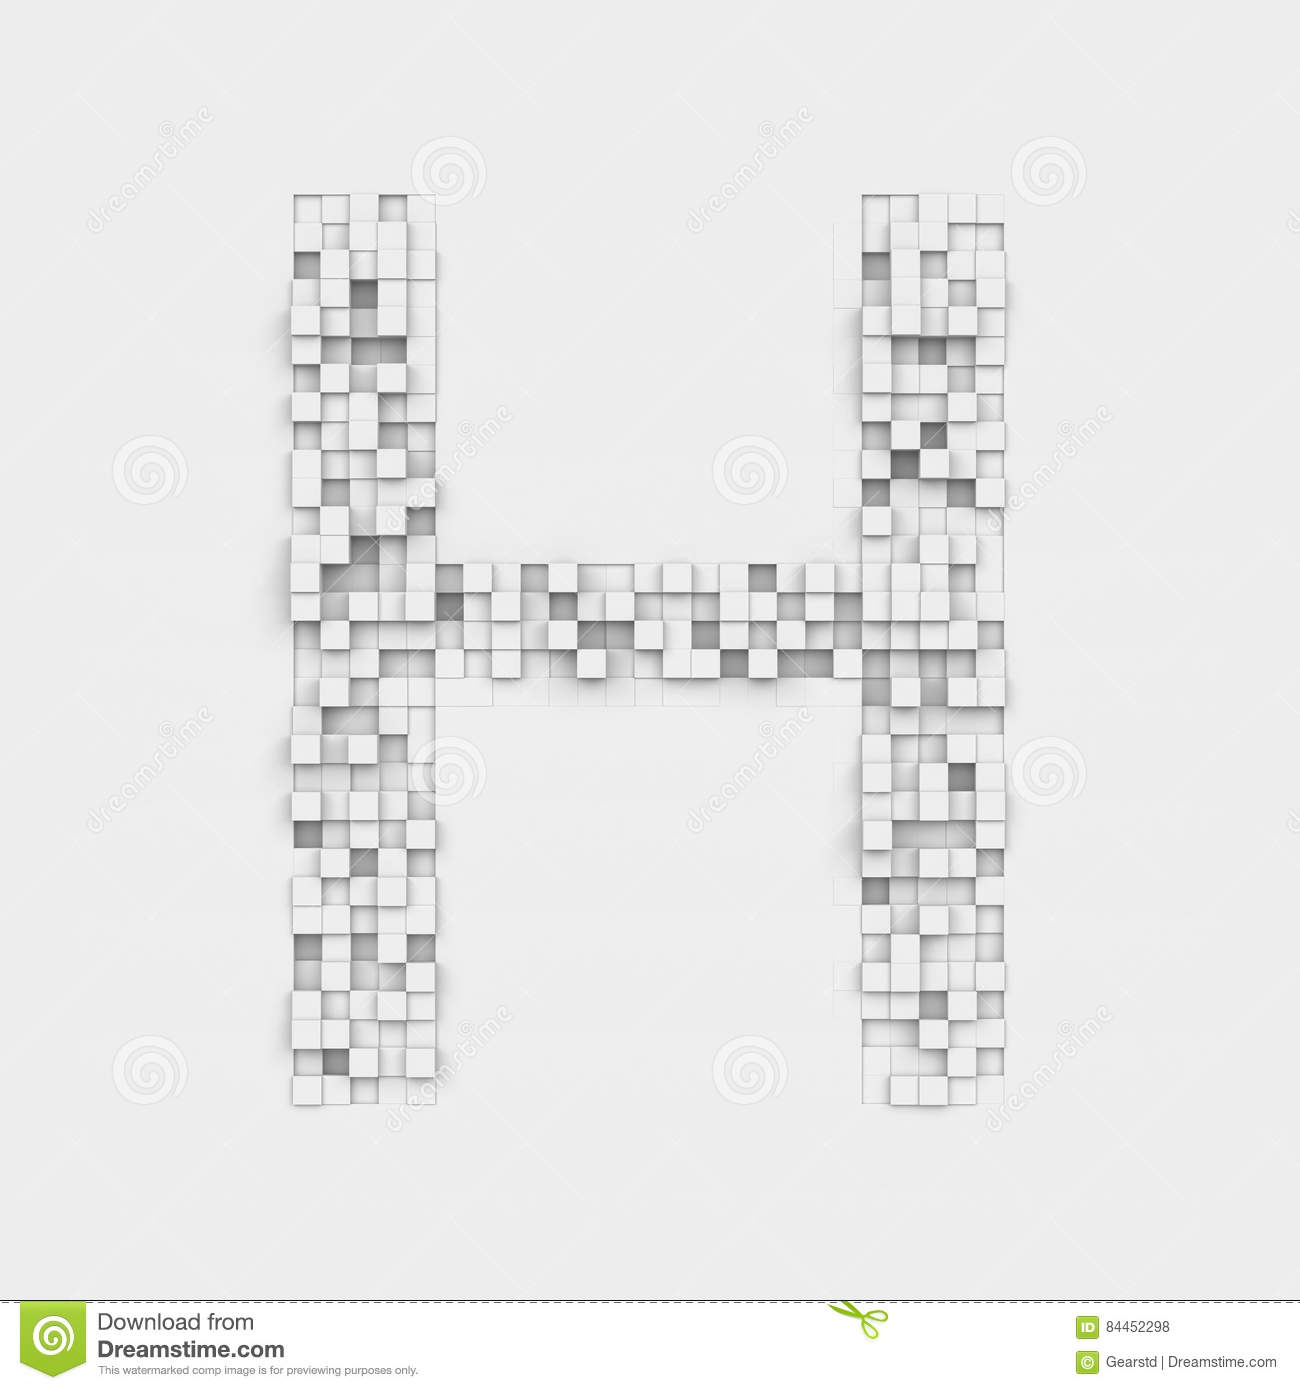 Rendering large letter h made up of white square uneven tiles stock download rendering large letter h made up of white square uneven tiles stock illustration illustration thecheapjerseys Choice Image